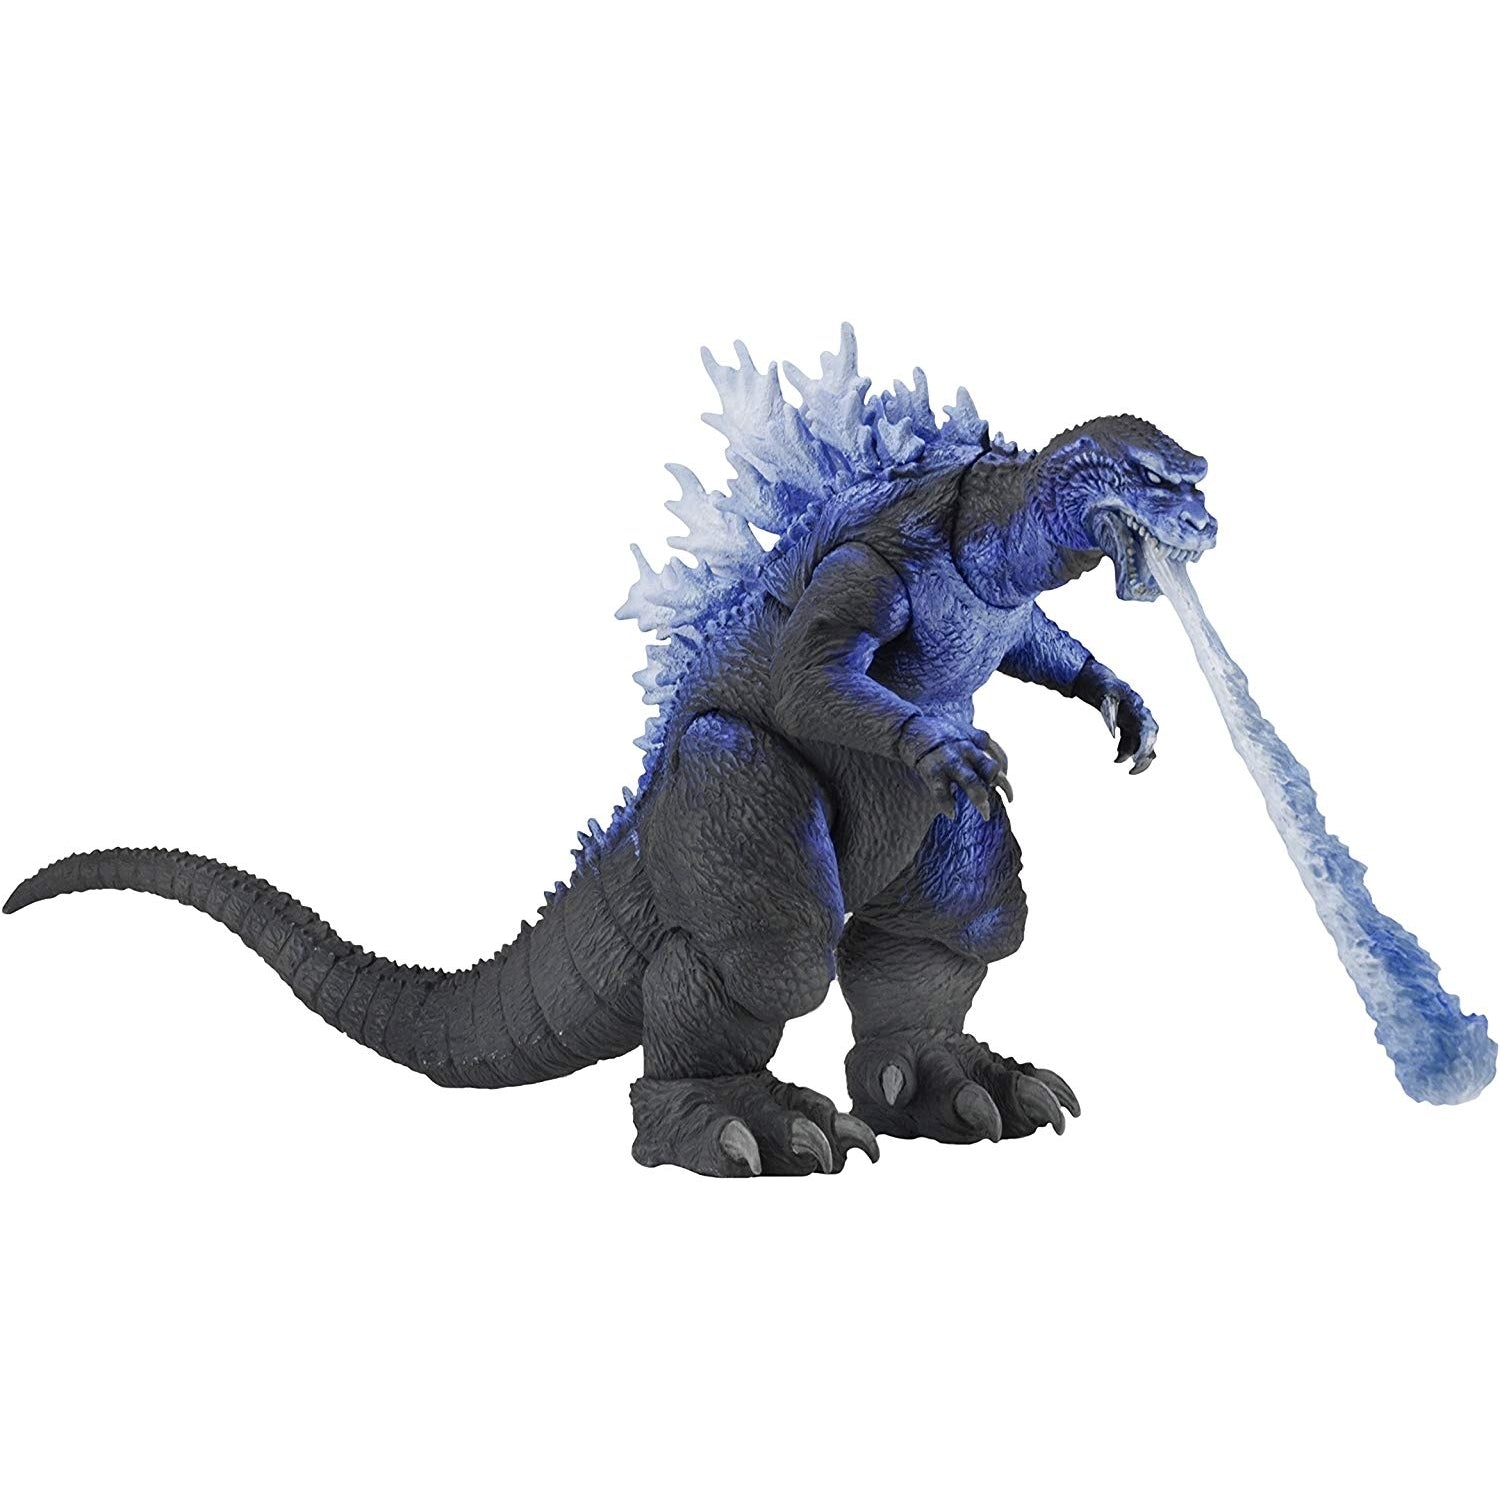 Giant Monsters All-Out Attack Godzilla Action Figure